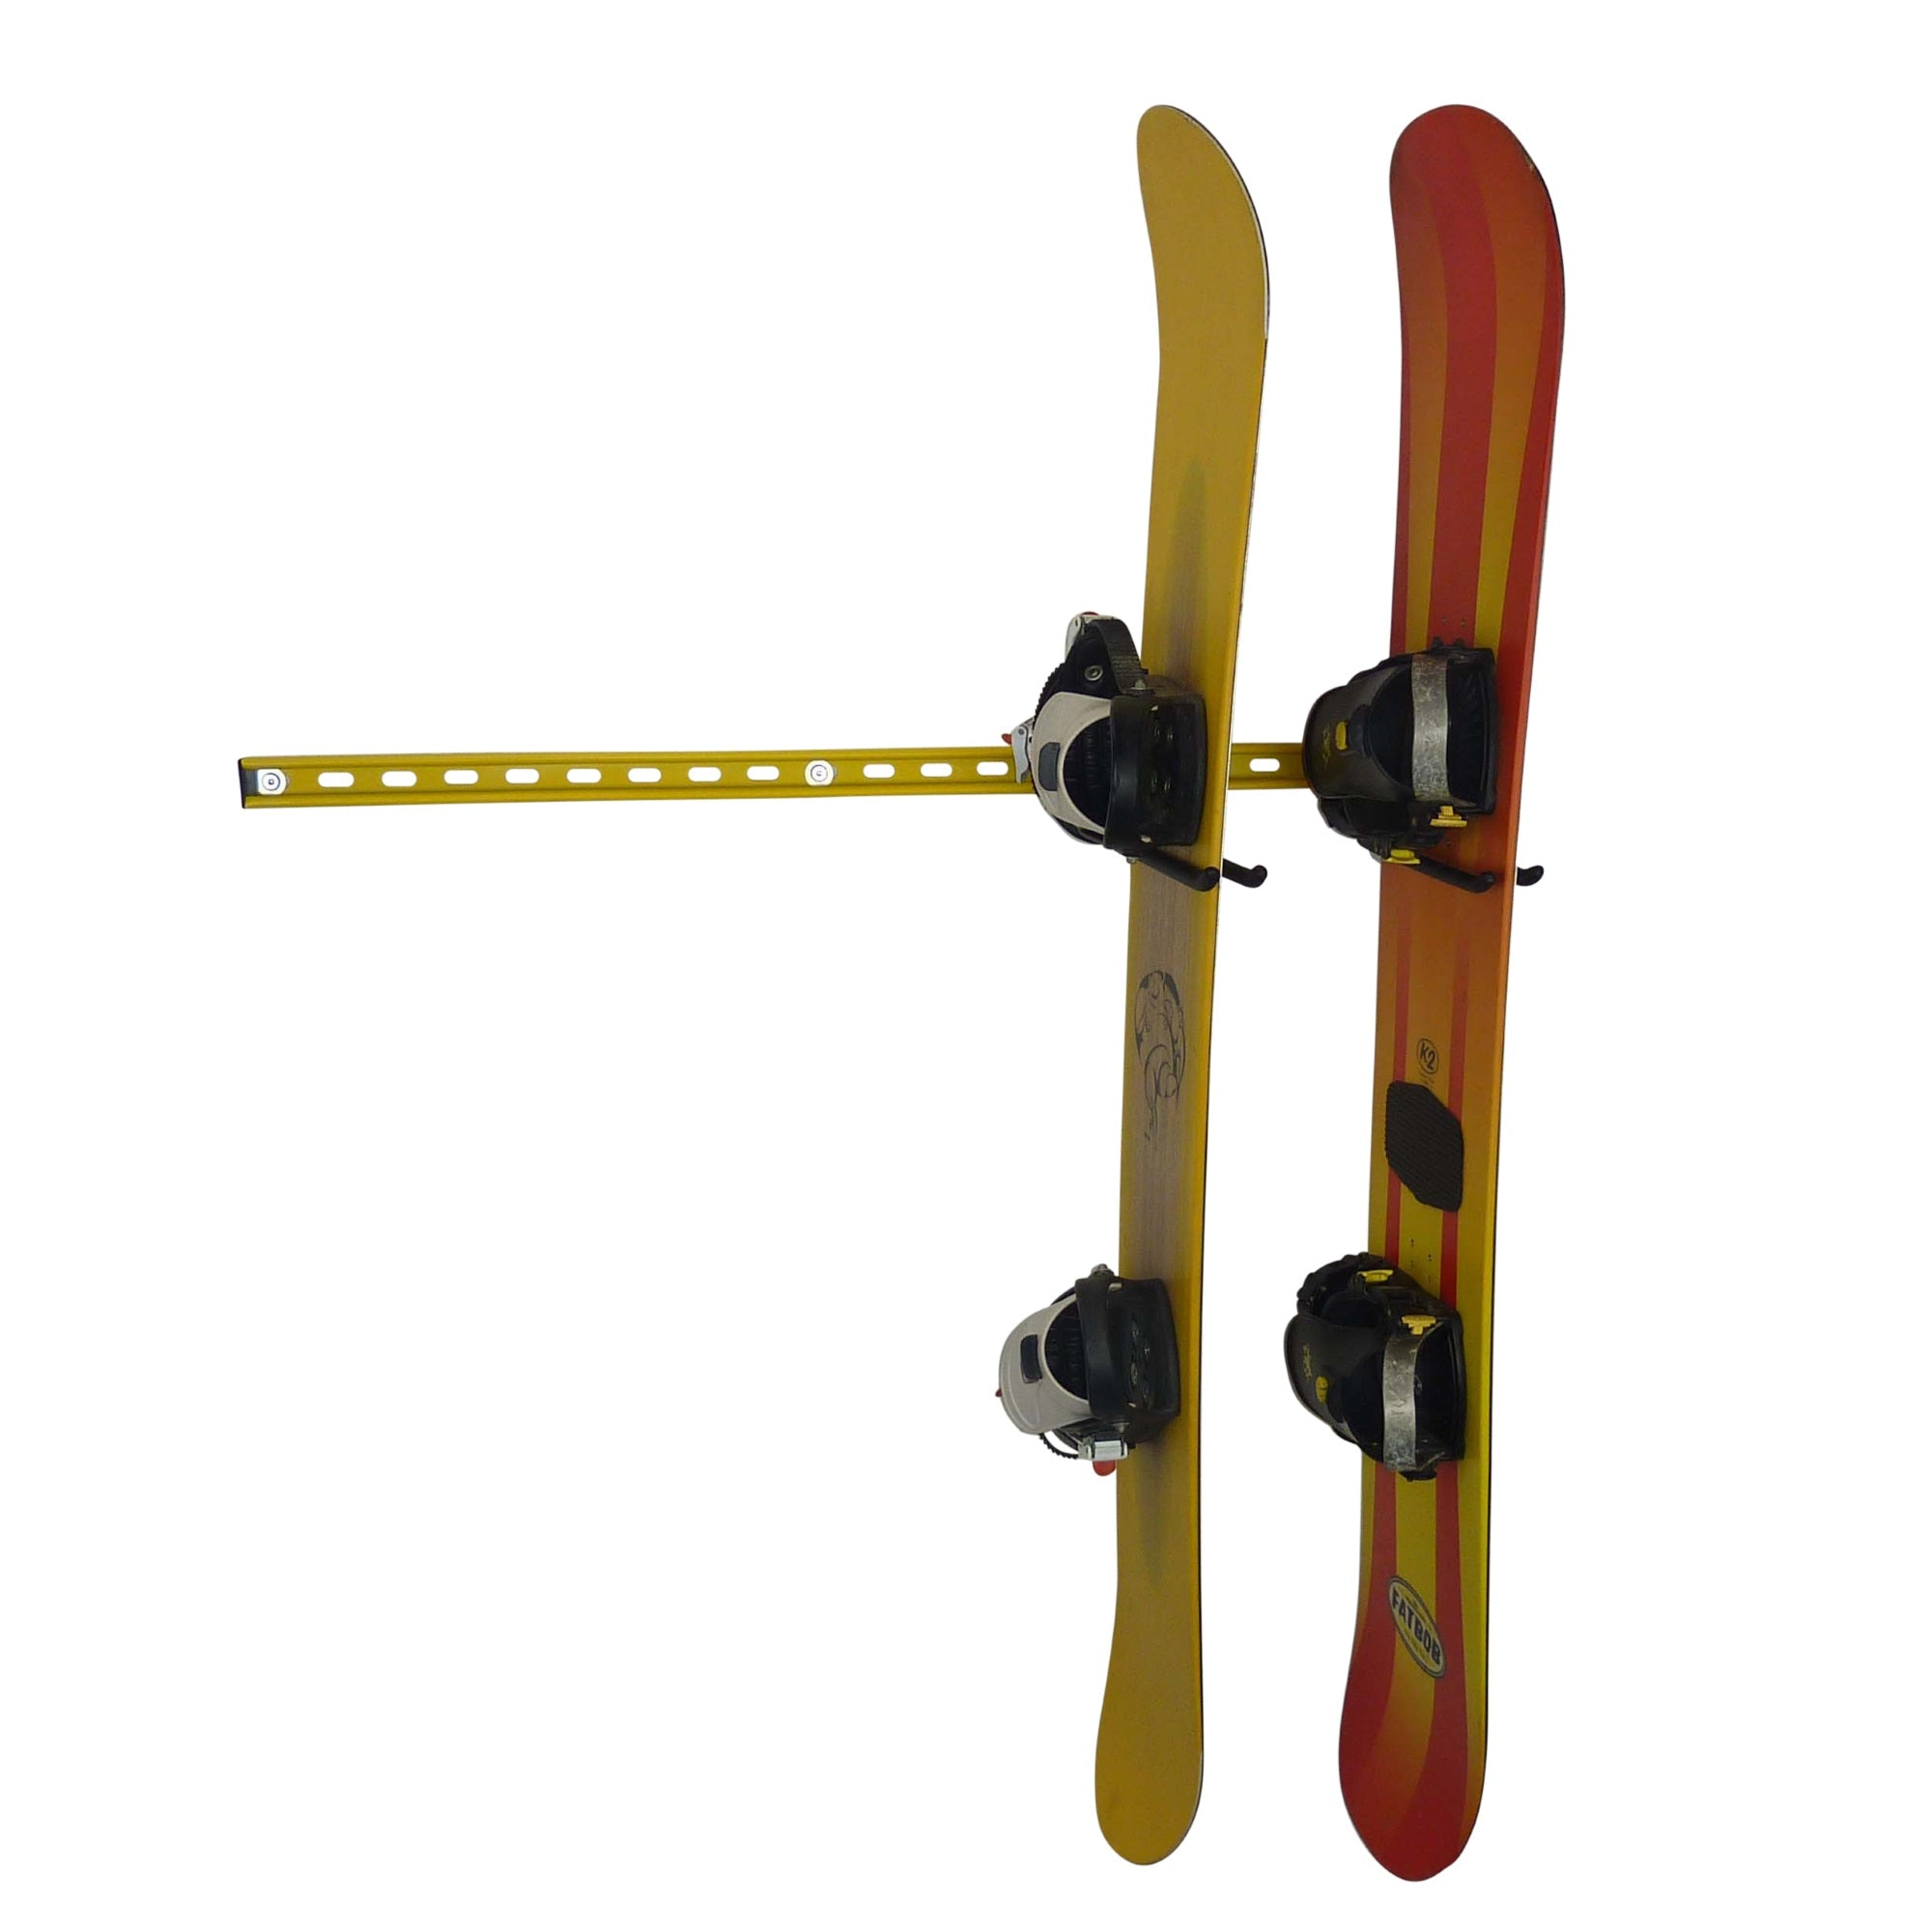 Wall mounting snowboard rack for 2 snowboards